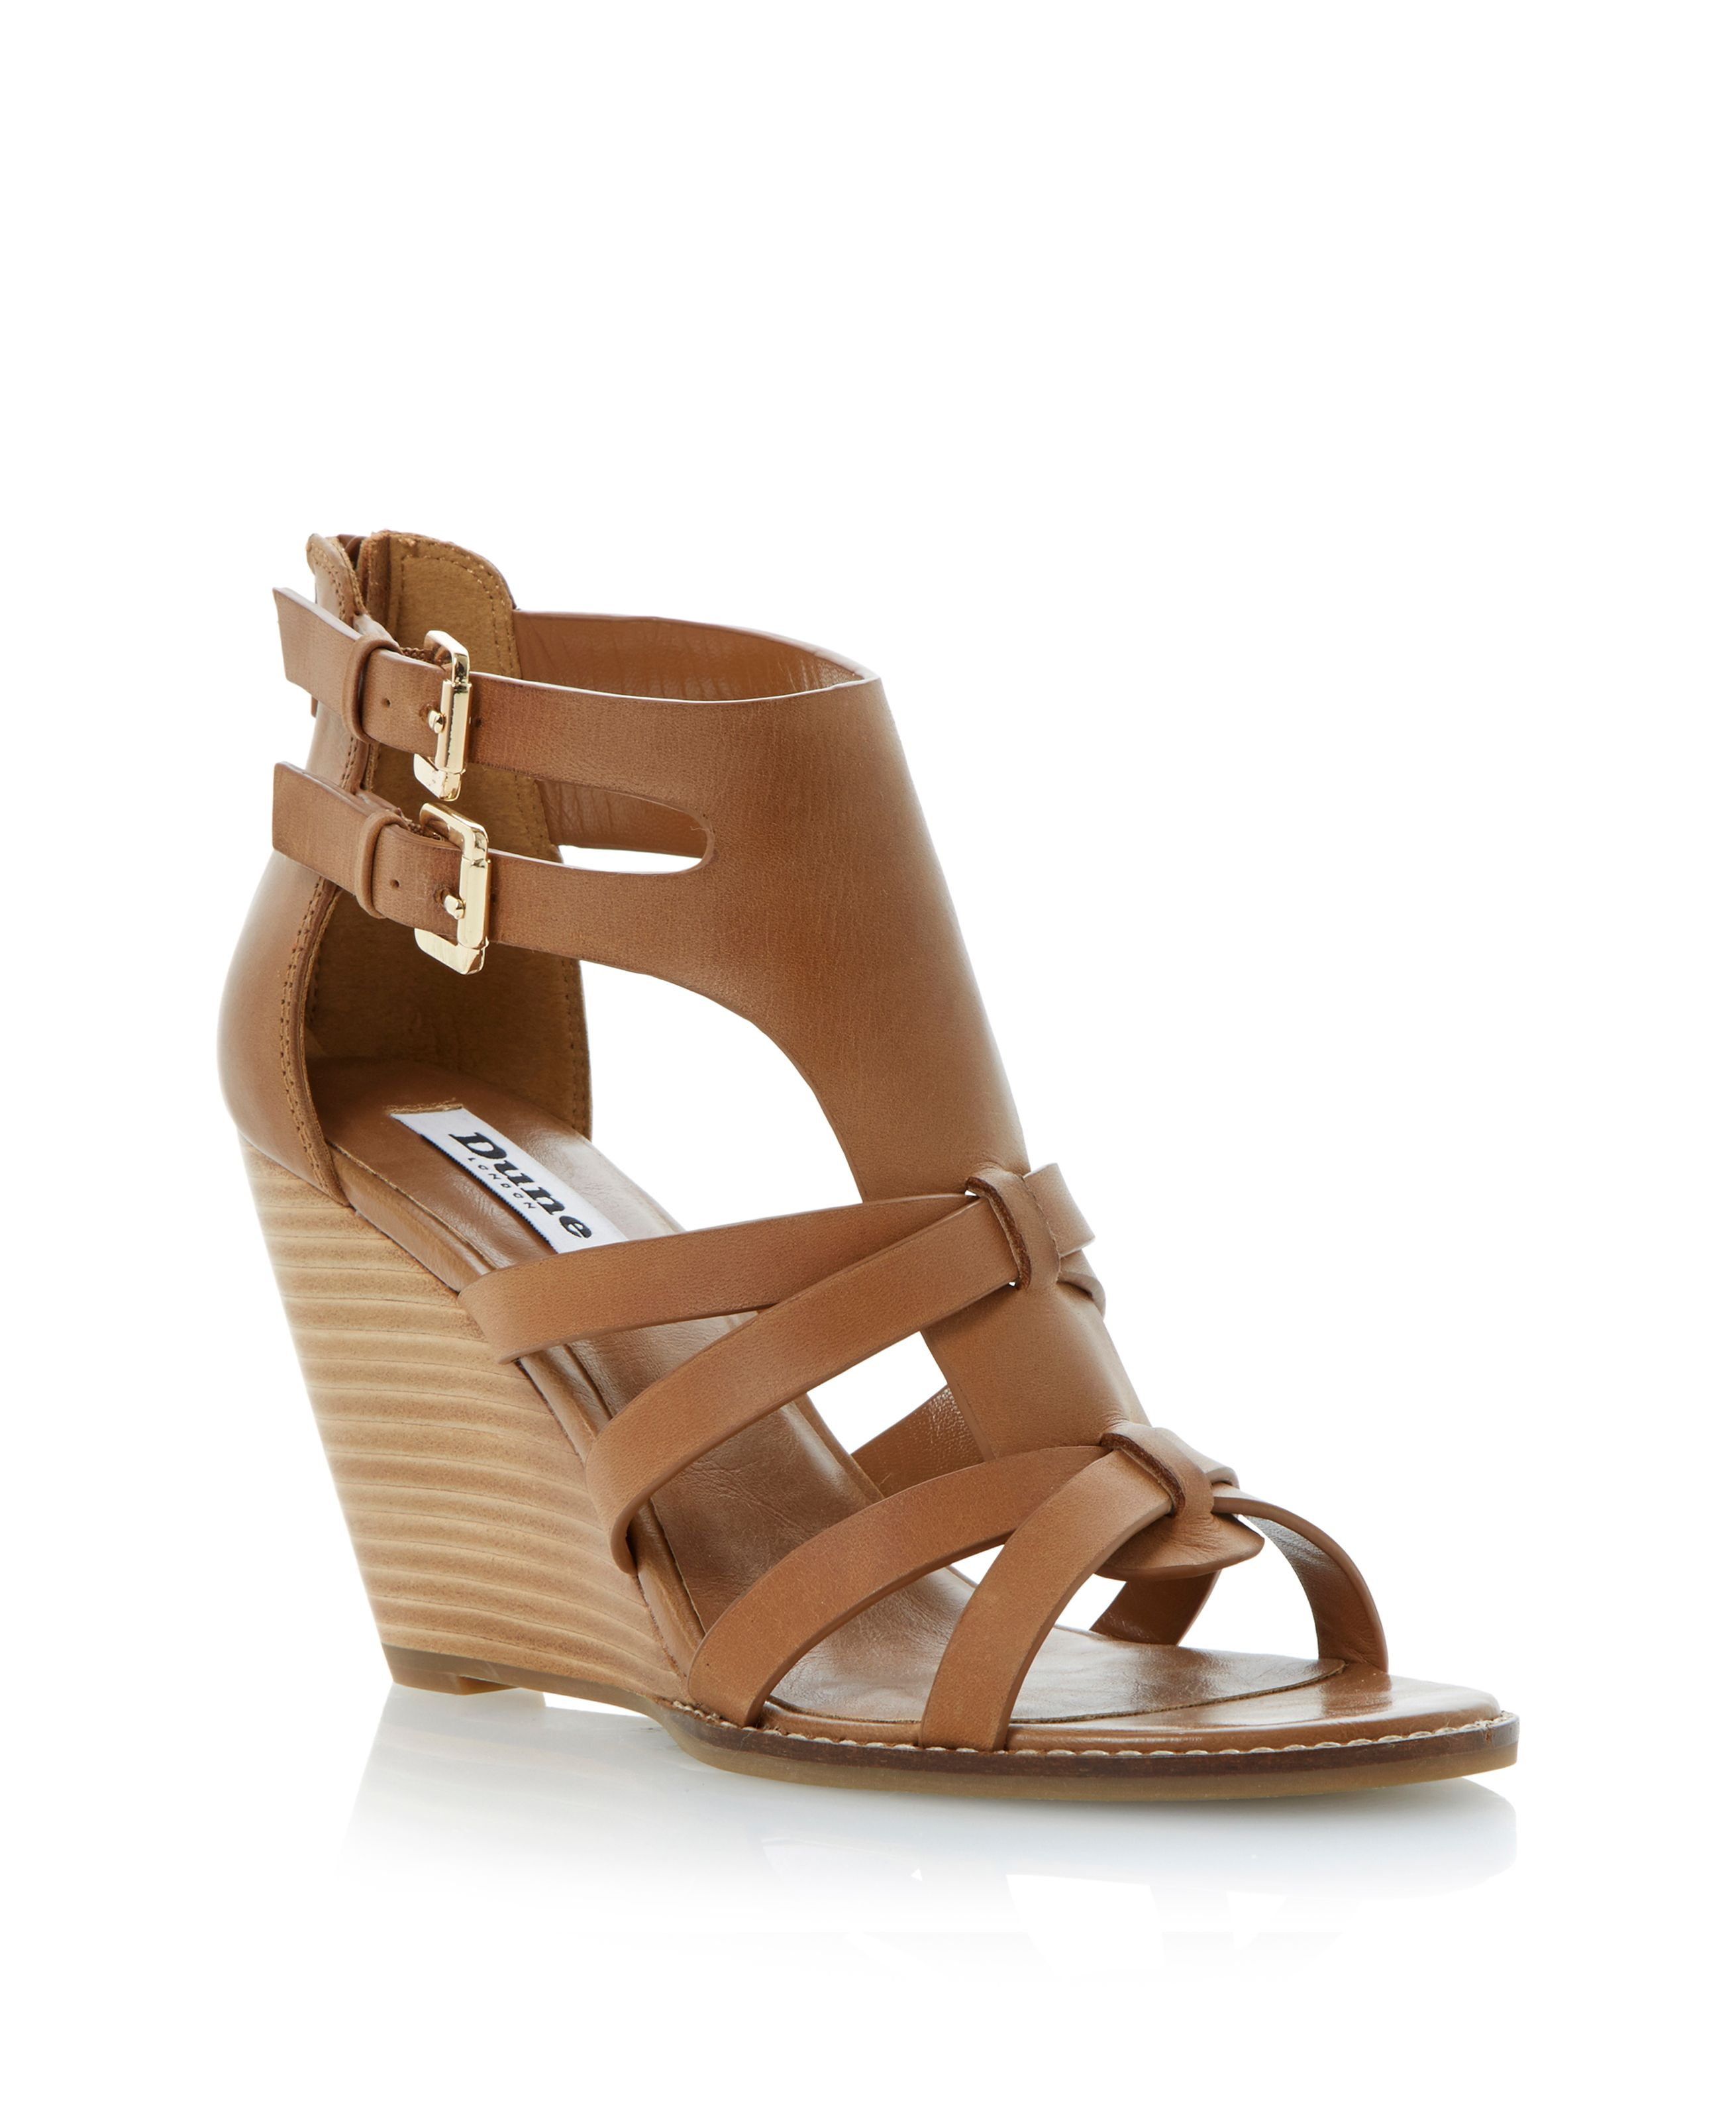 Gerad leather wedge buckle sandals